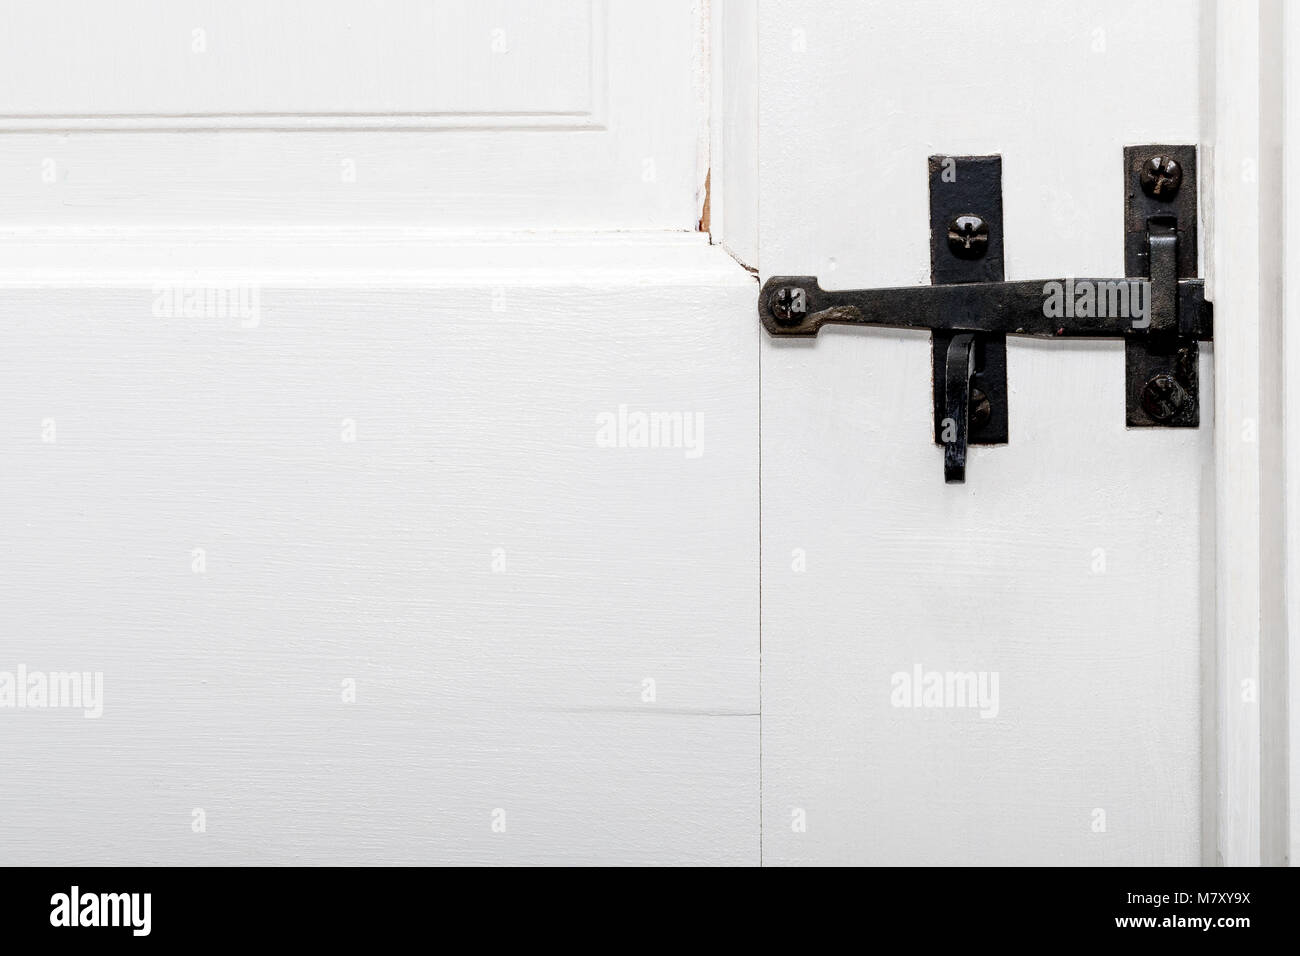 An antique black wrought iron door latch on a white painted wooded door. - Stock Image